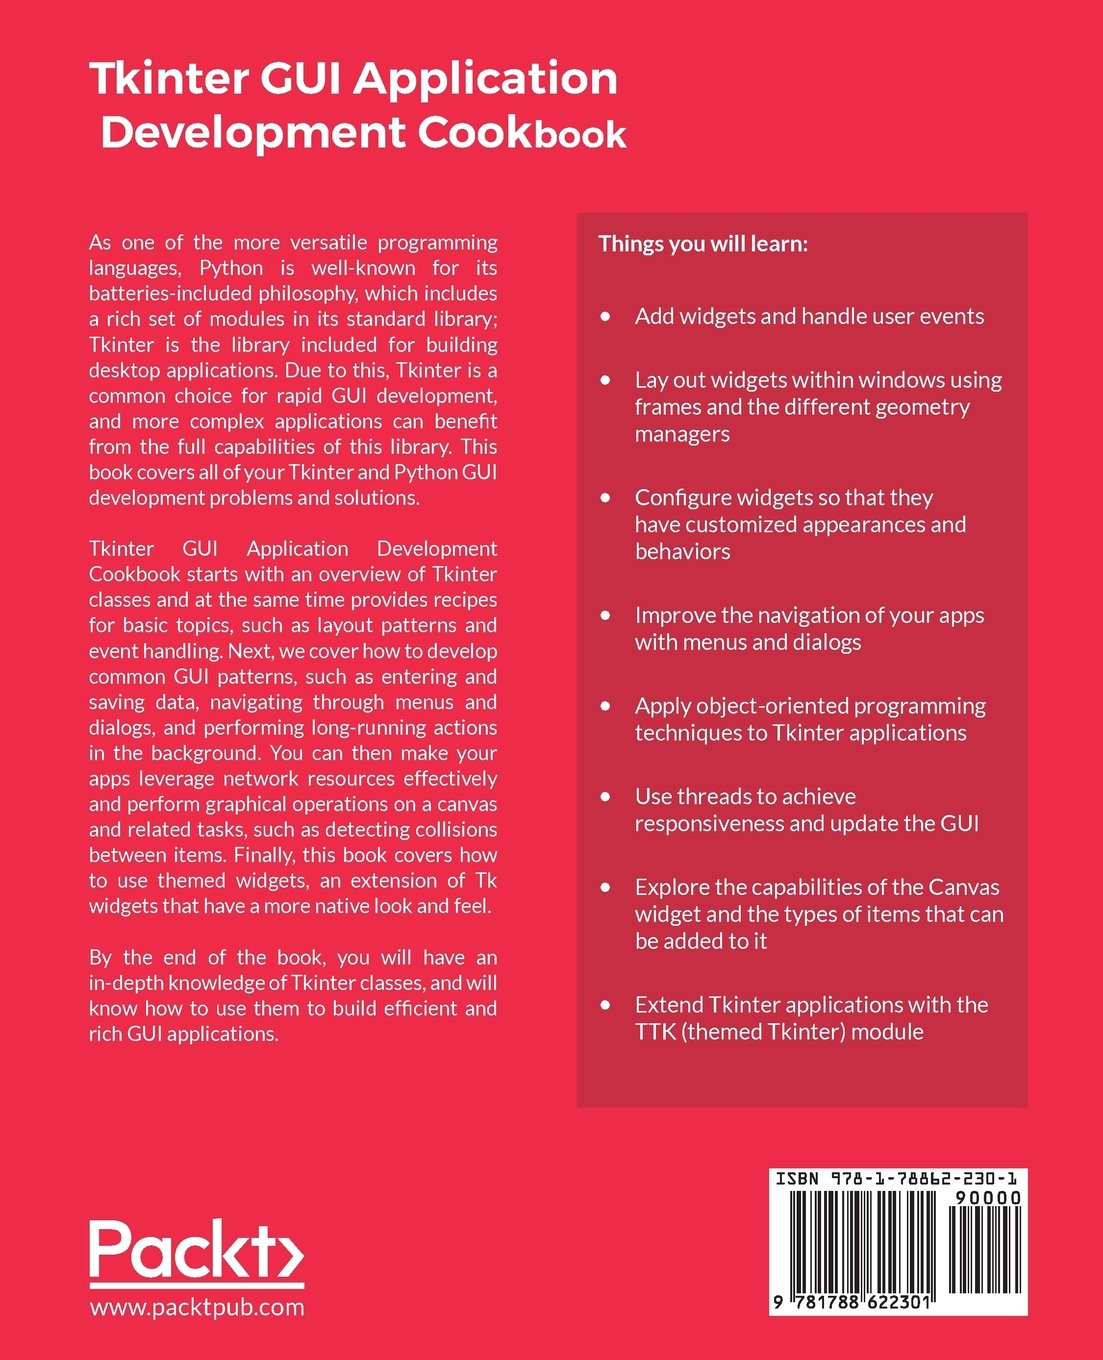 Tkinter GUI Application Development Cookbook: A practical solution